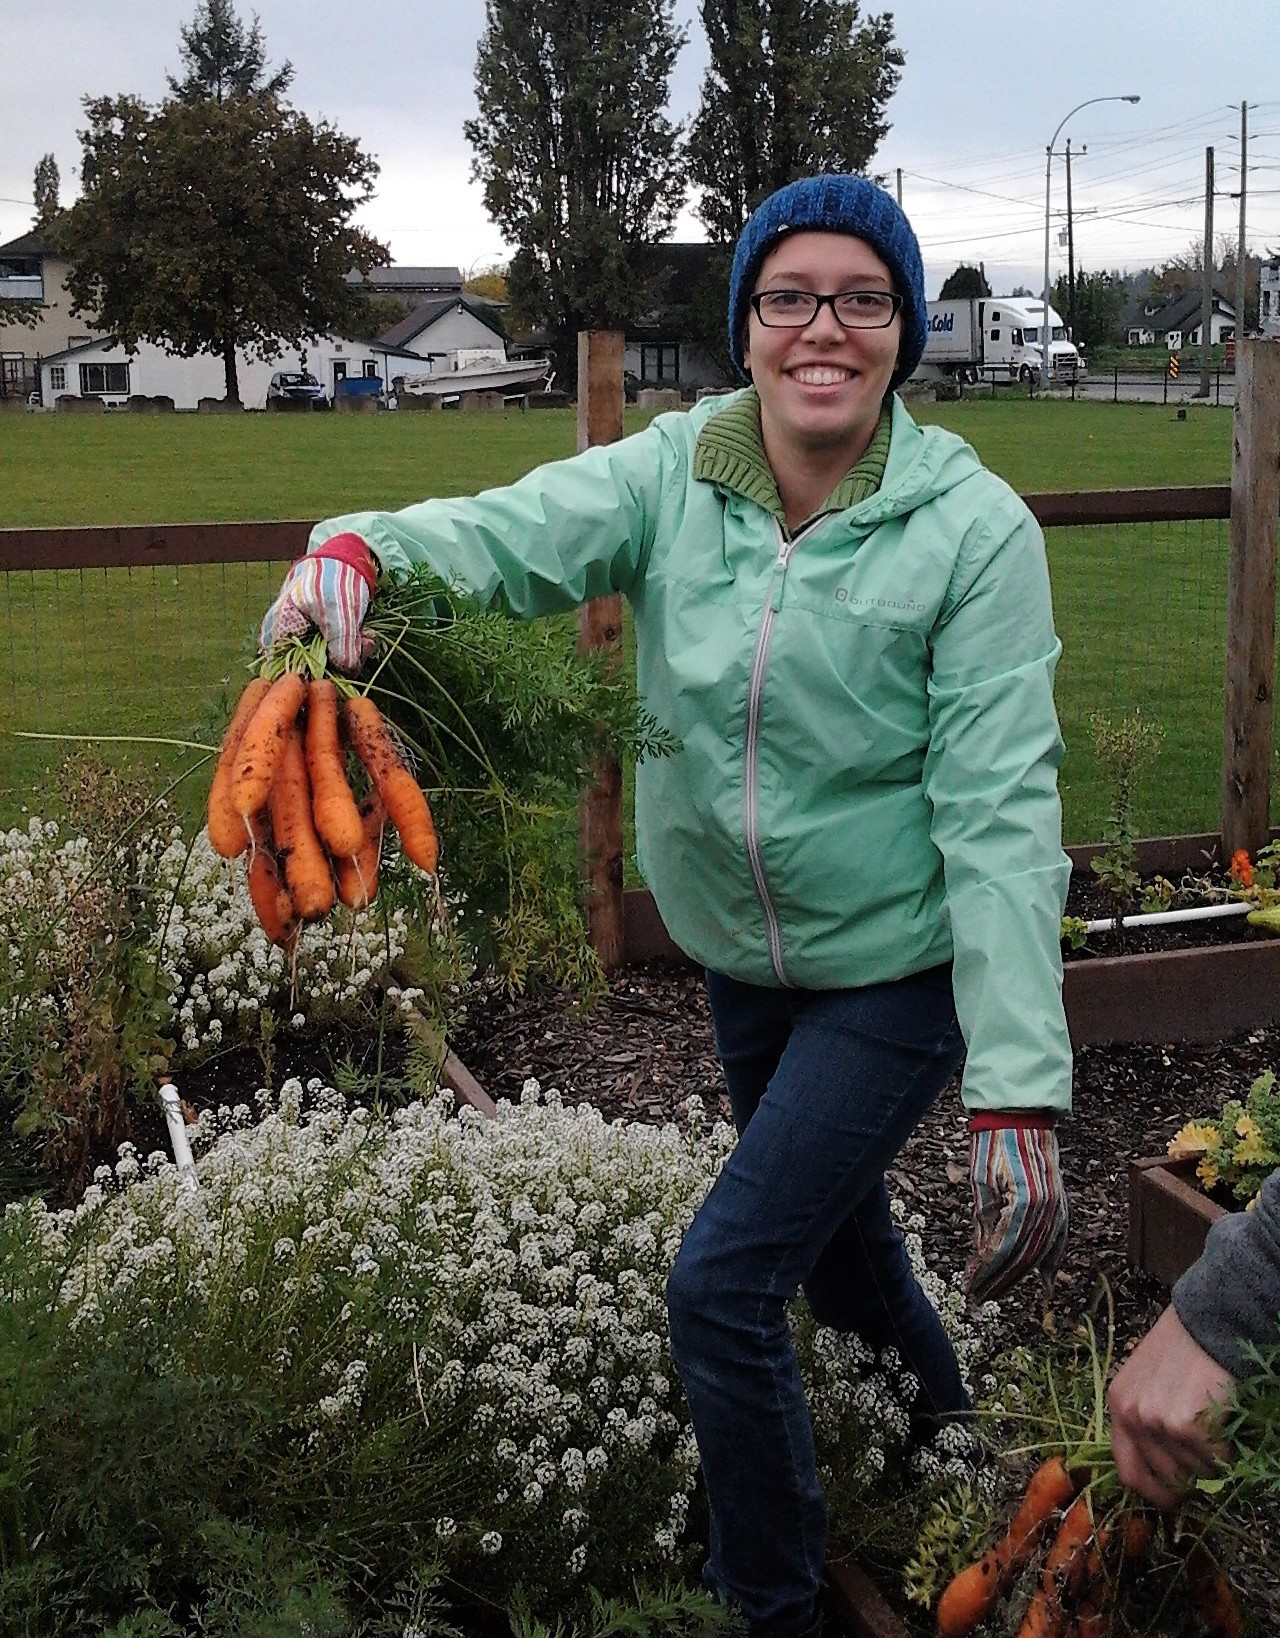 Esther Cannon harvesting carrots Christ Covenant Church Community Garden, Langley 2016